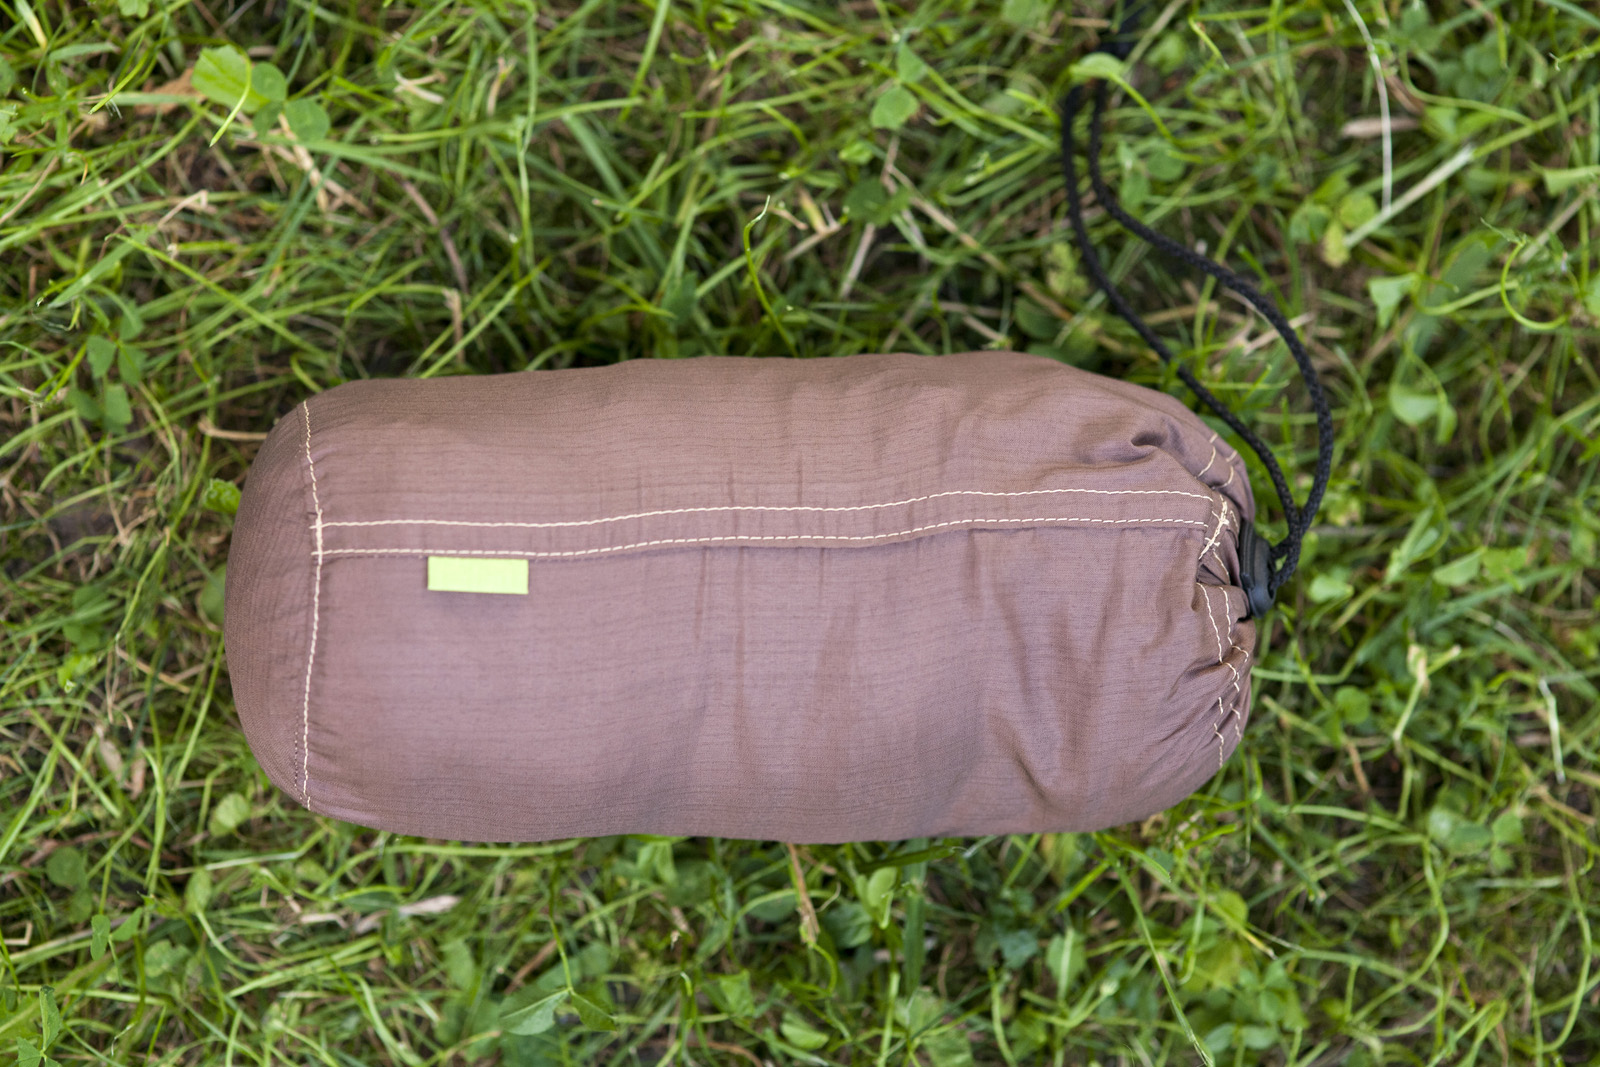 hamac ripstop brown-green saculet 3